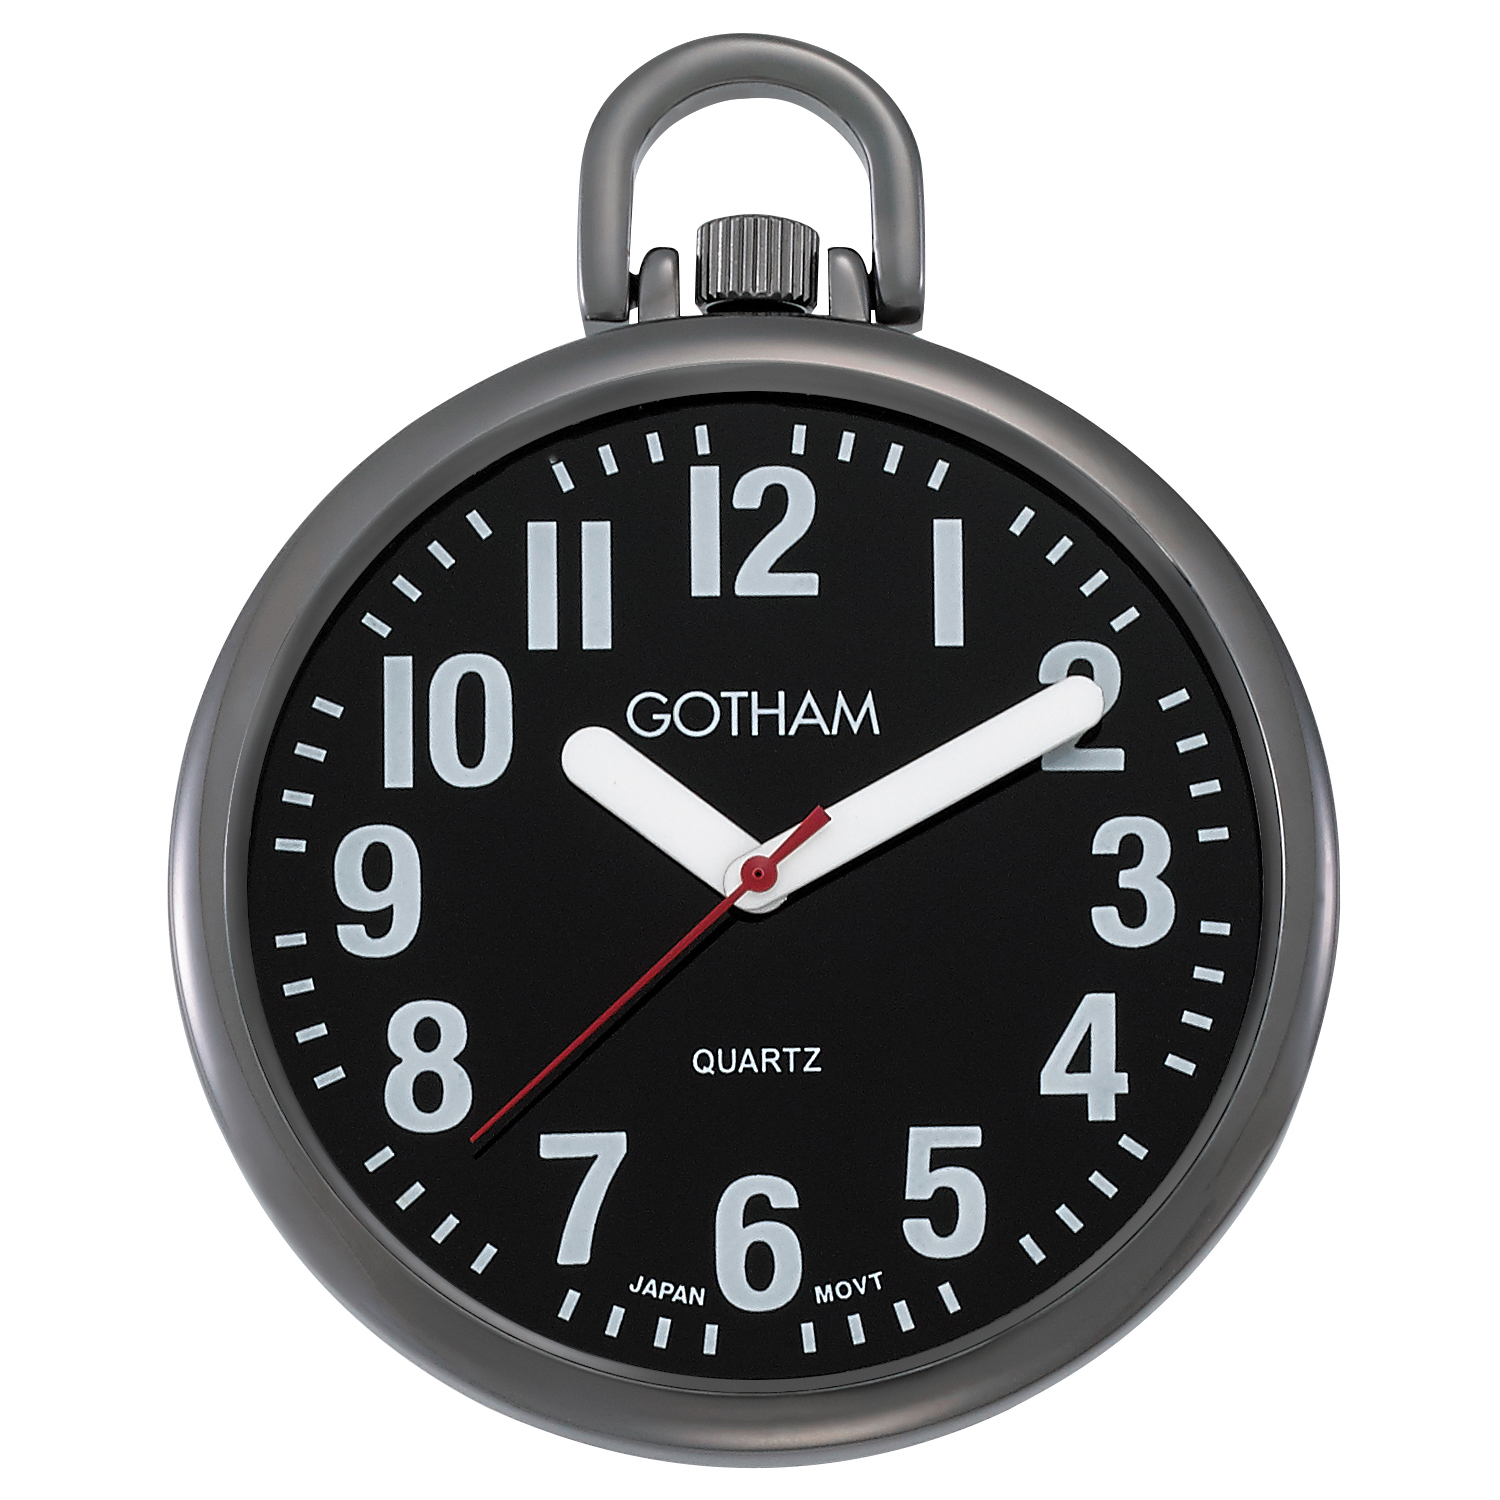 Gotham Men's Large Number Open Face Gun Metal Analog Quartz Pocket Watch with Chain # GWC15033BBK